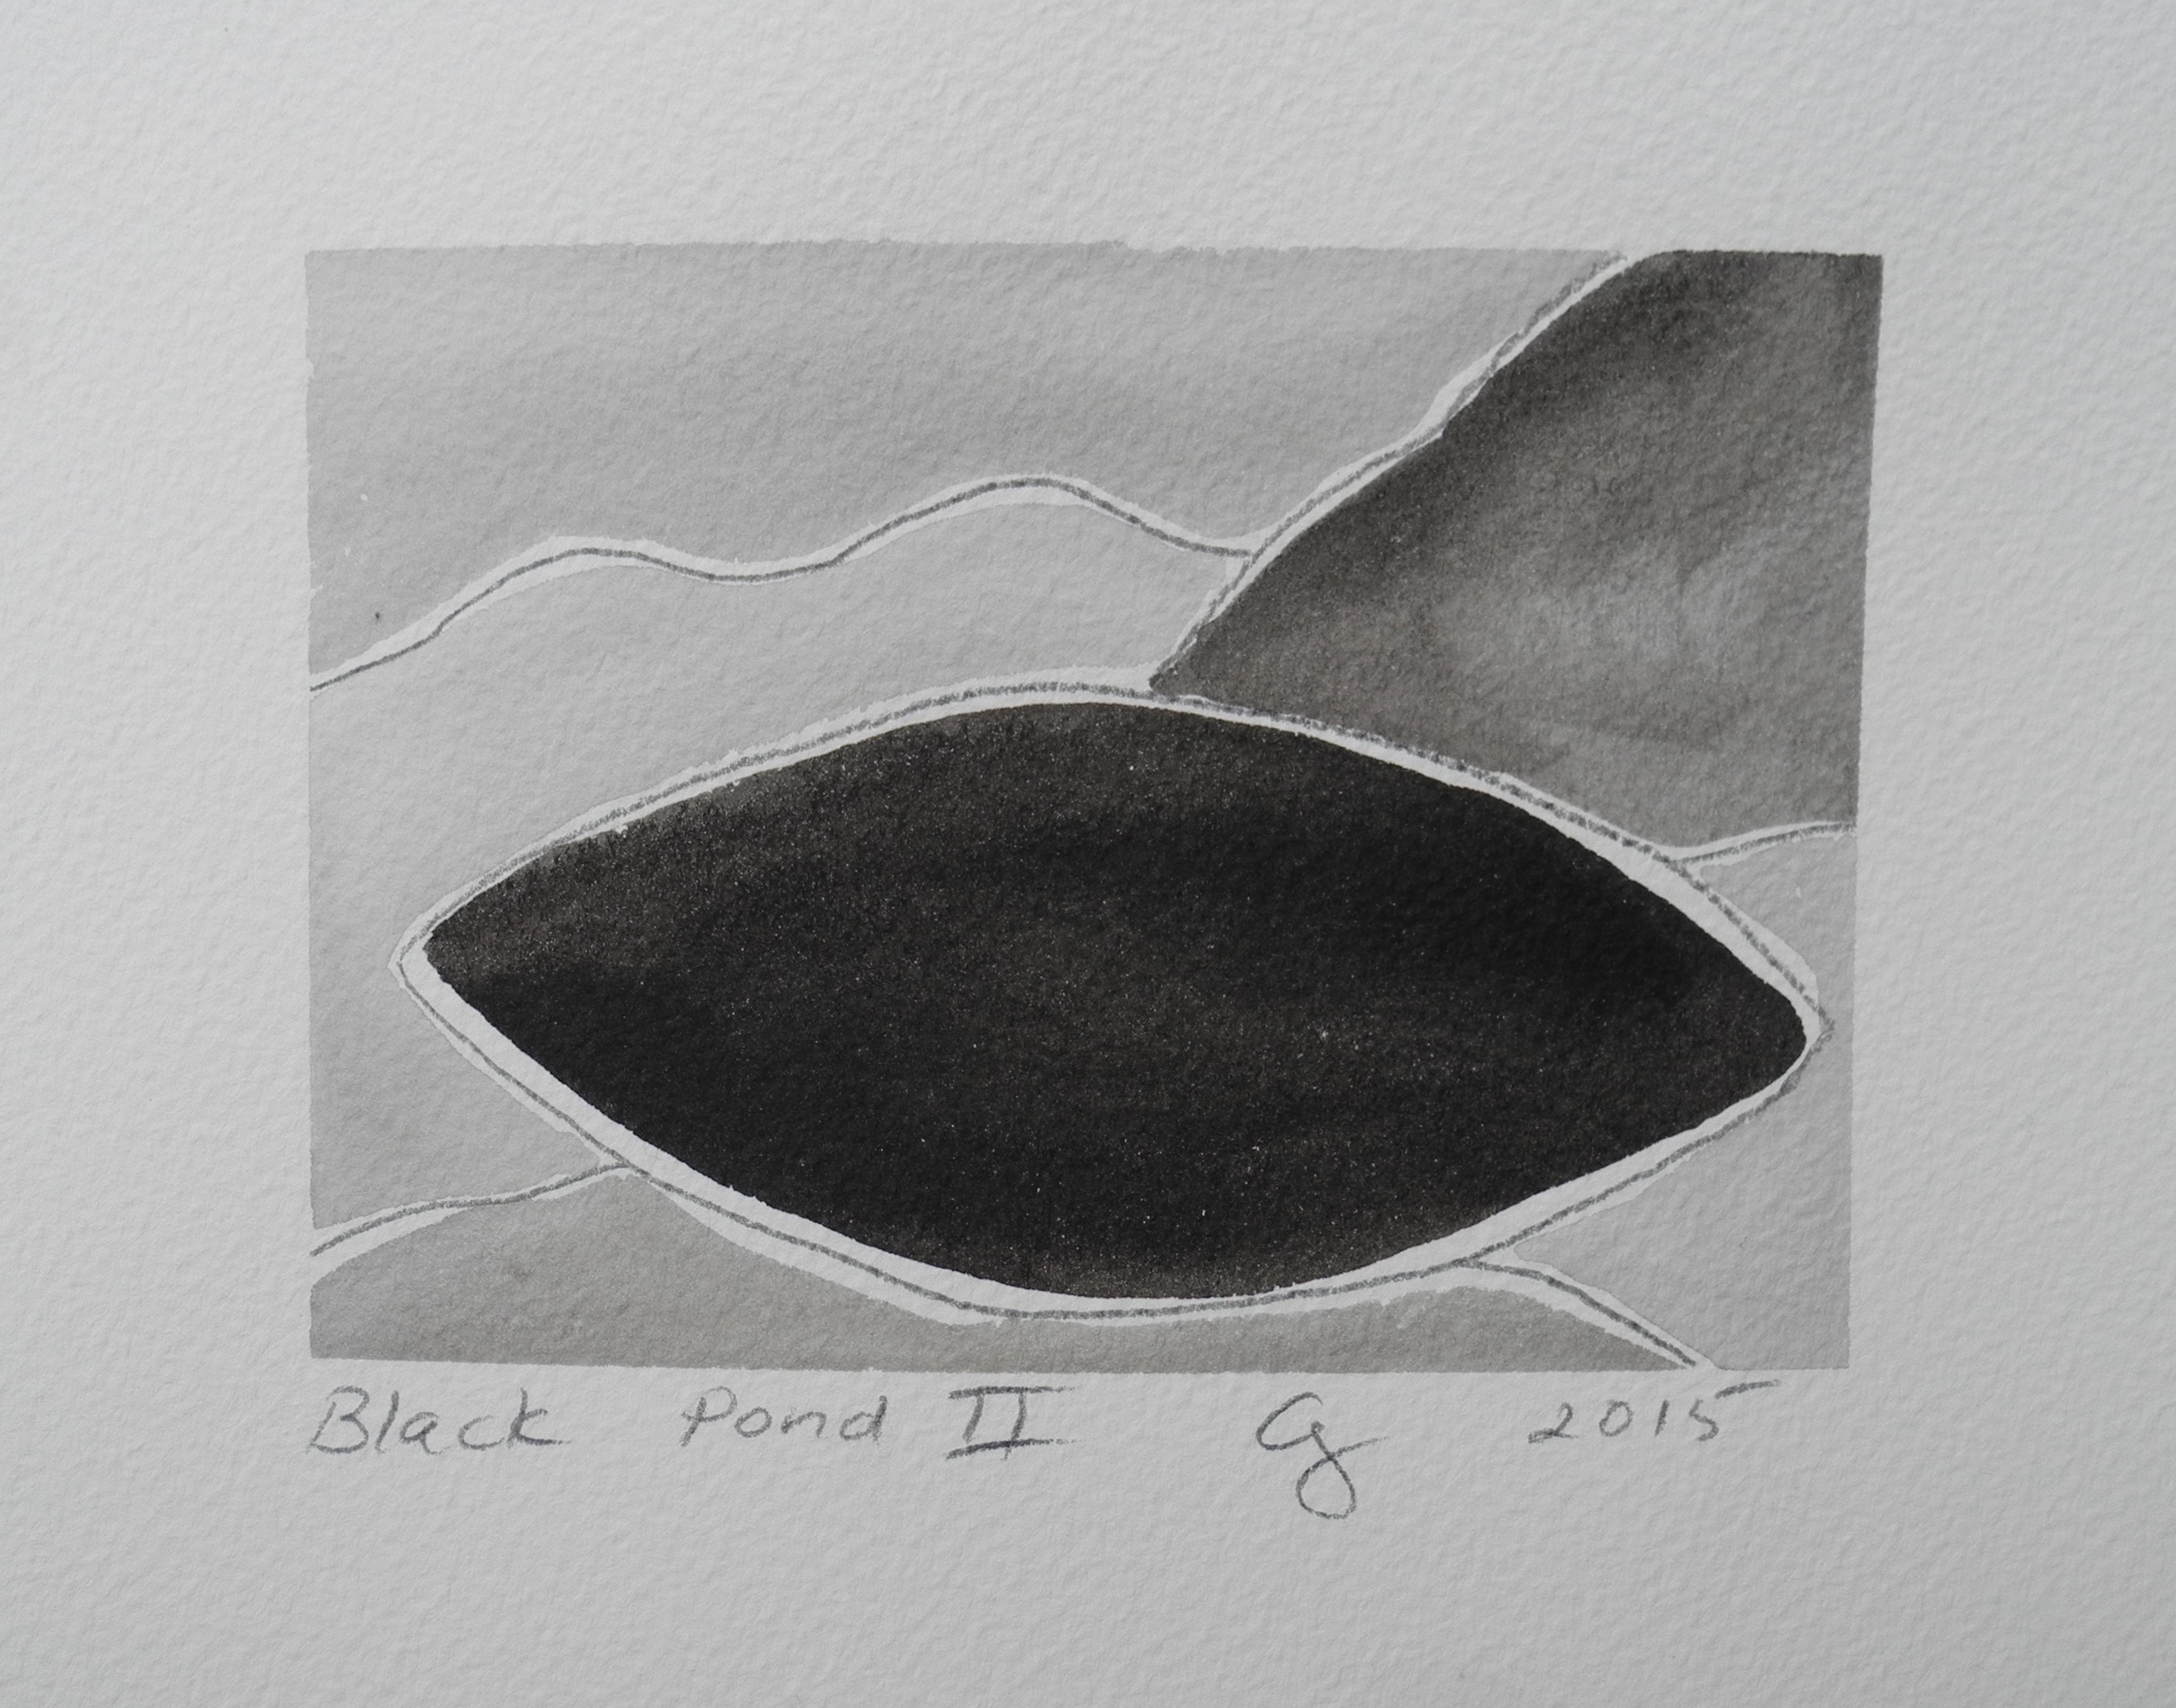 Black Pond II